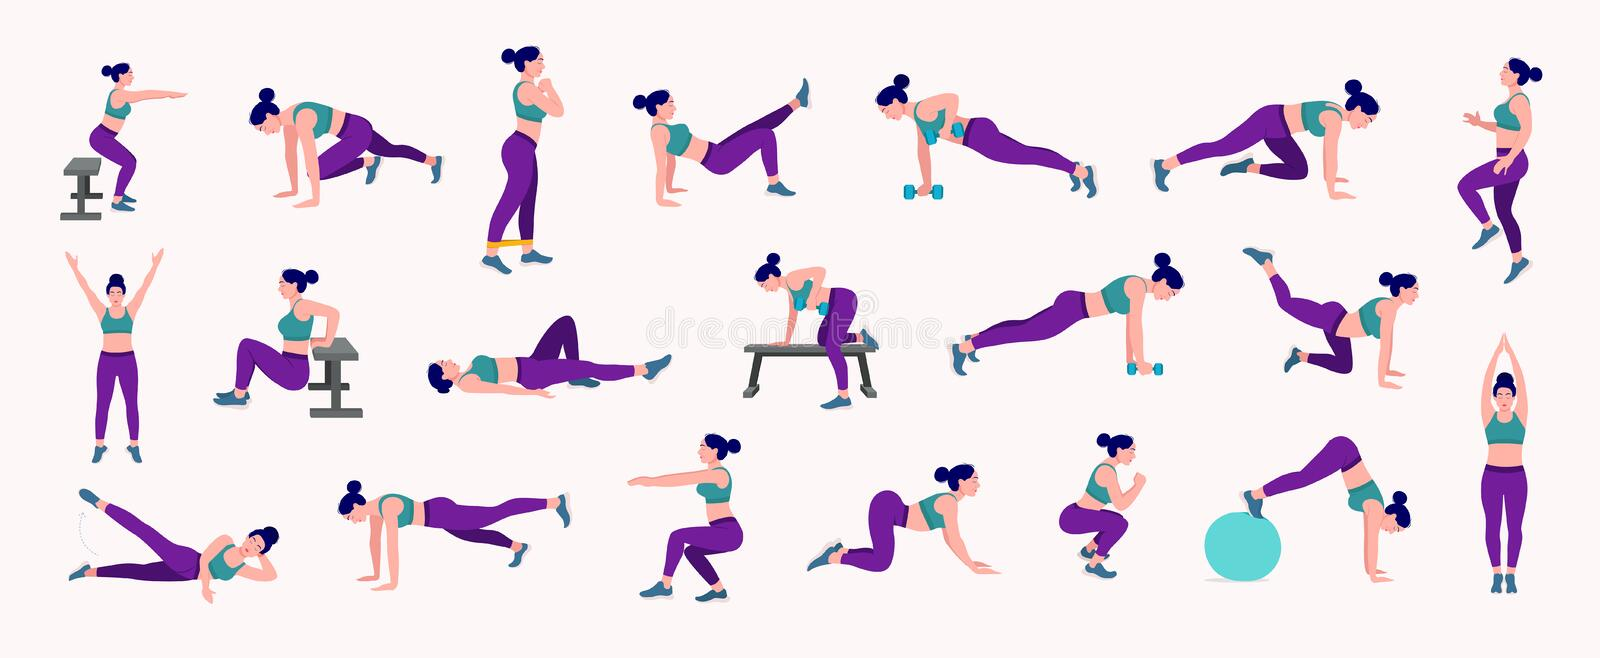 Workout girl set. Woman doing fitness and yoga exercises. Lunges and squats, plank and abc. Full body workout stock illustration